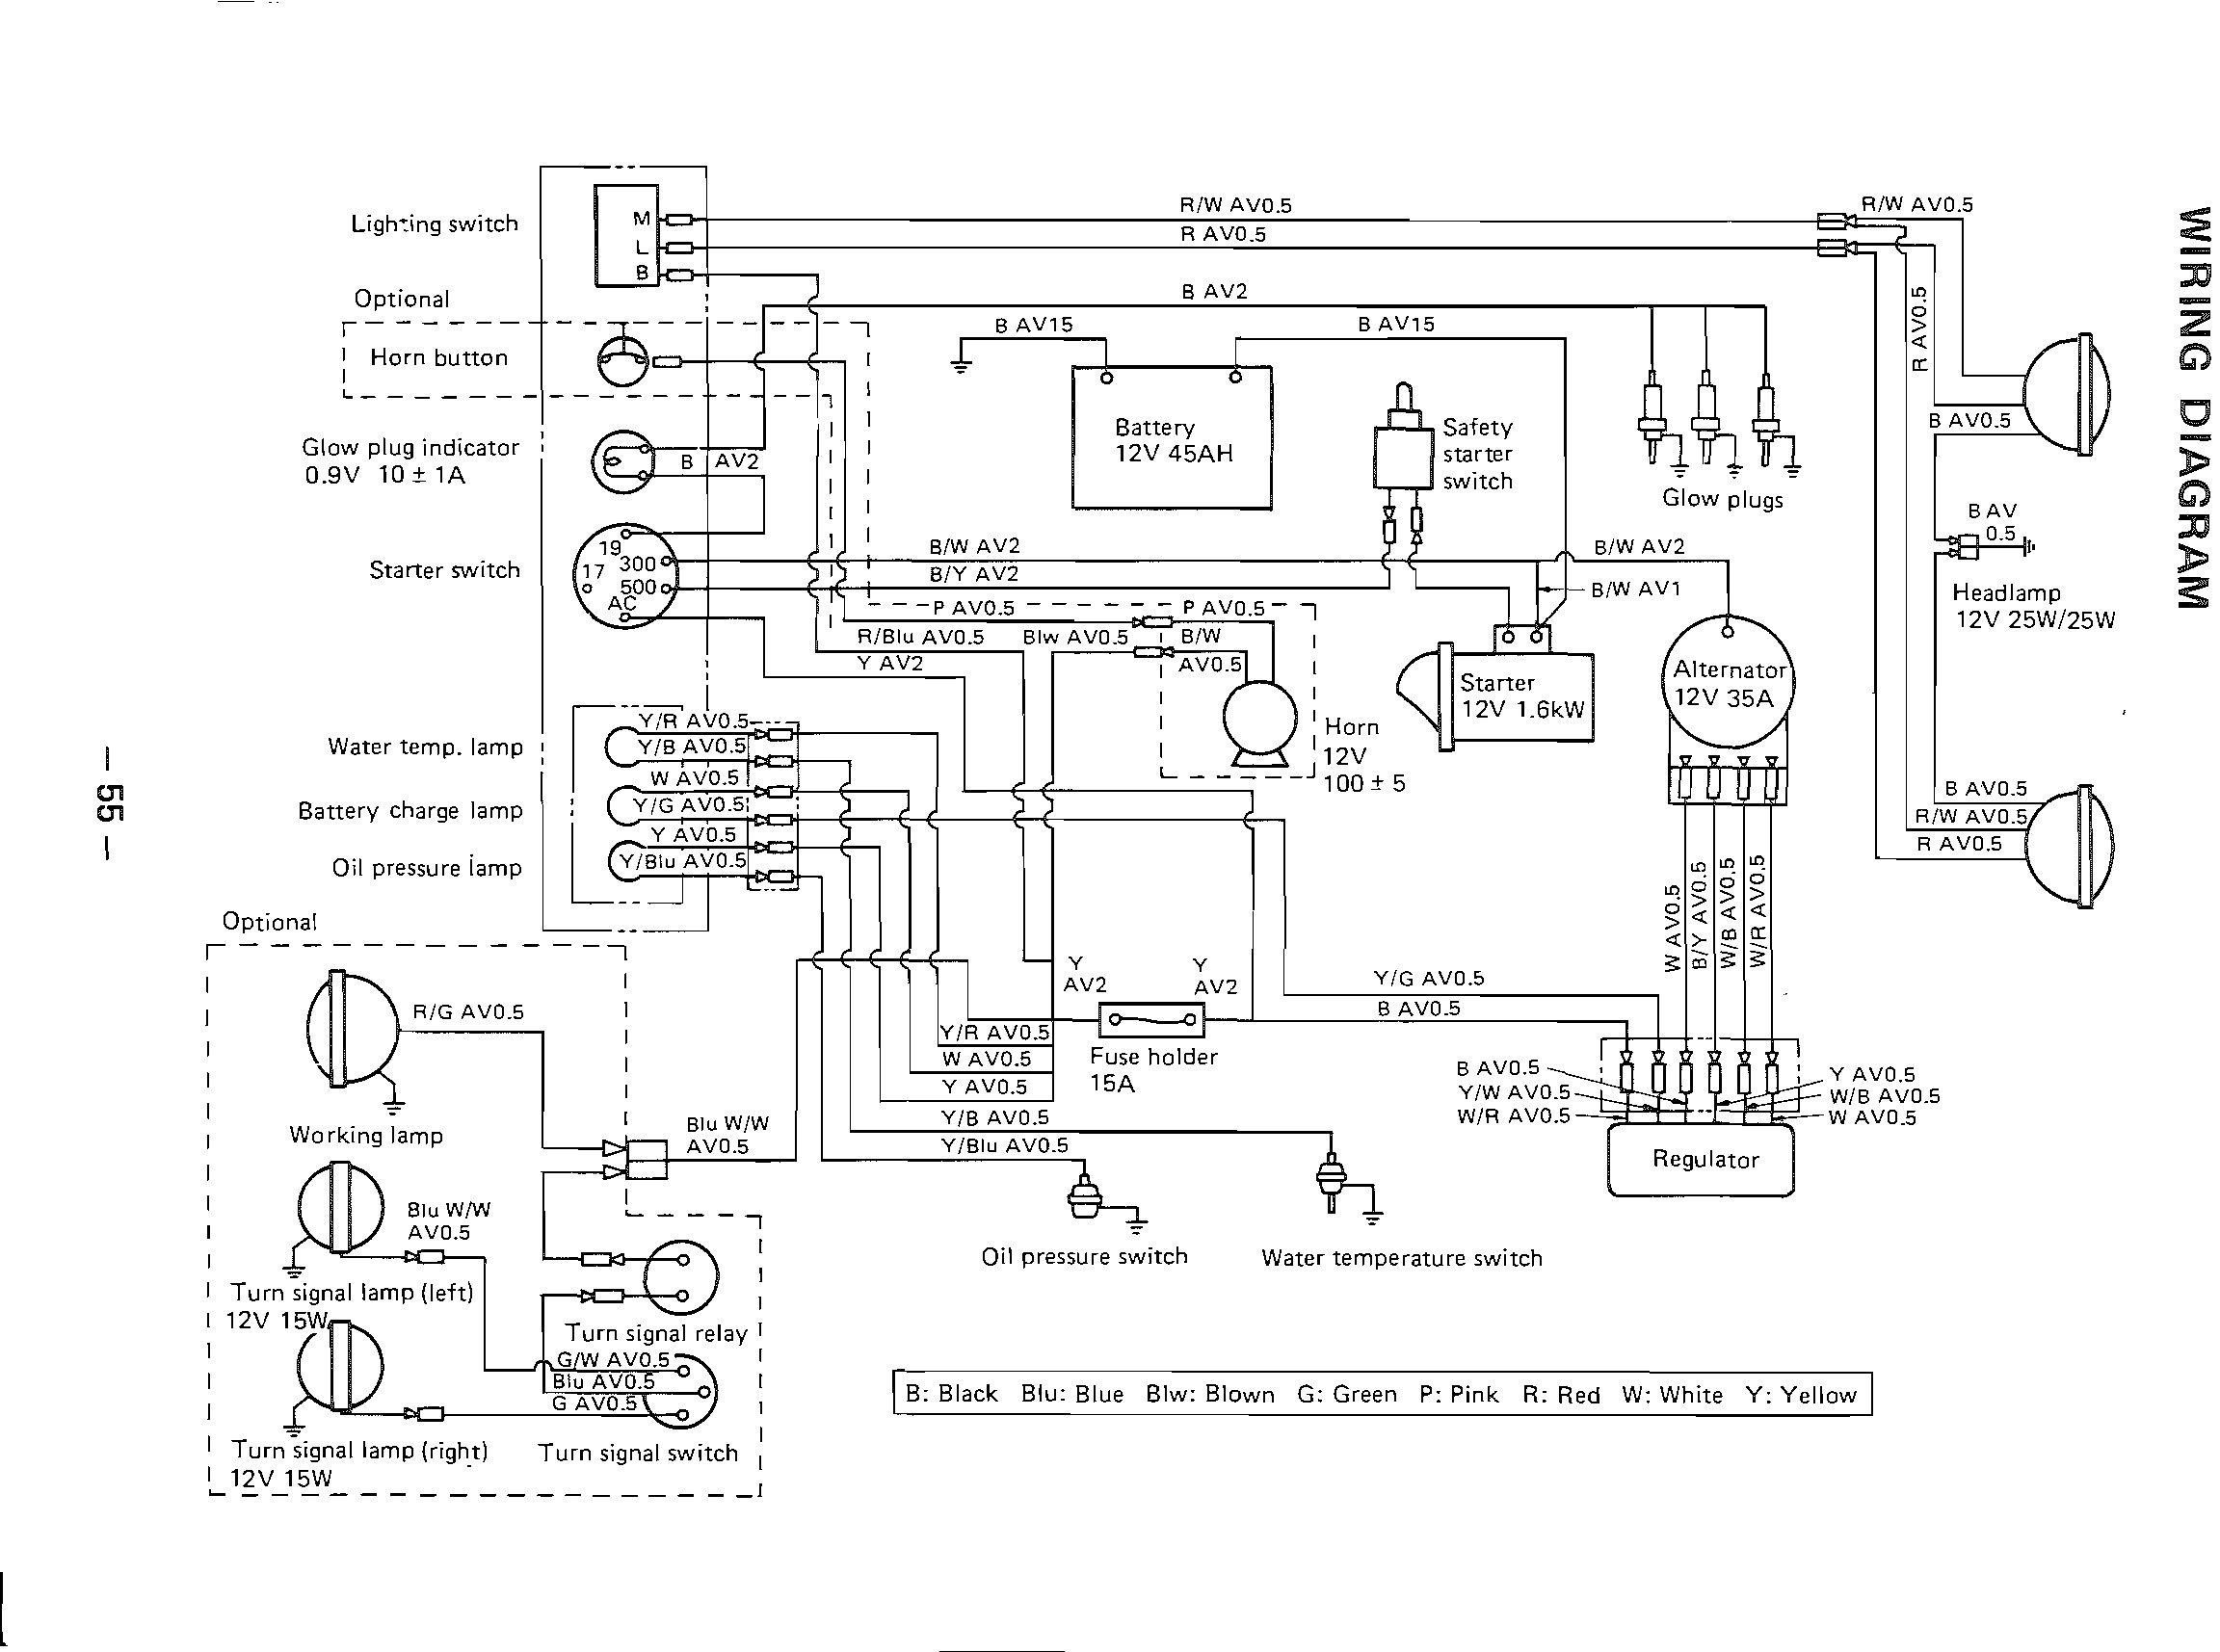 New Mf 135 Wiring Diagram in 2020 Diagram, How are you